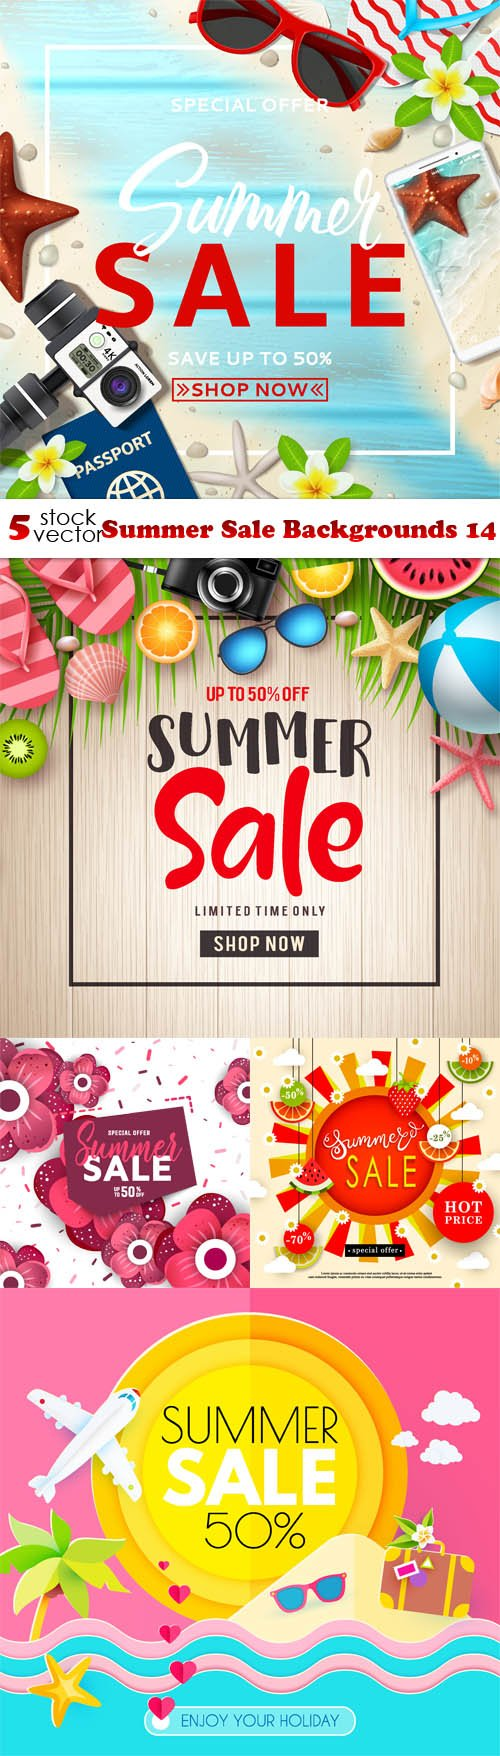 Vectors - Summer Sale Backgrounds 14